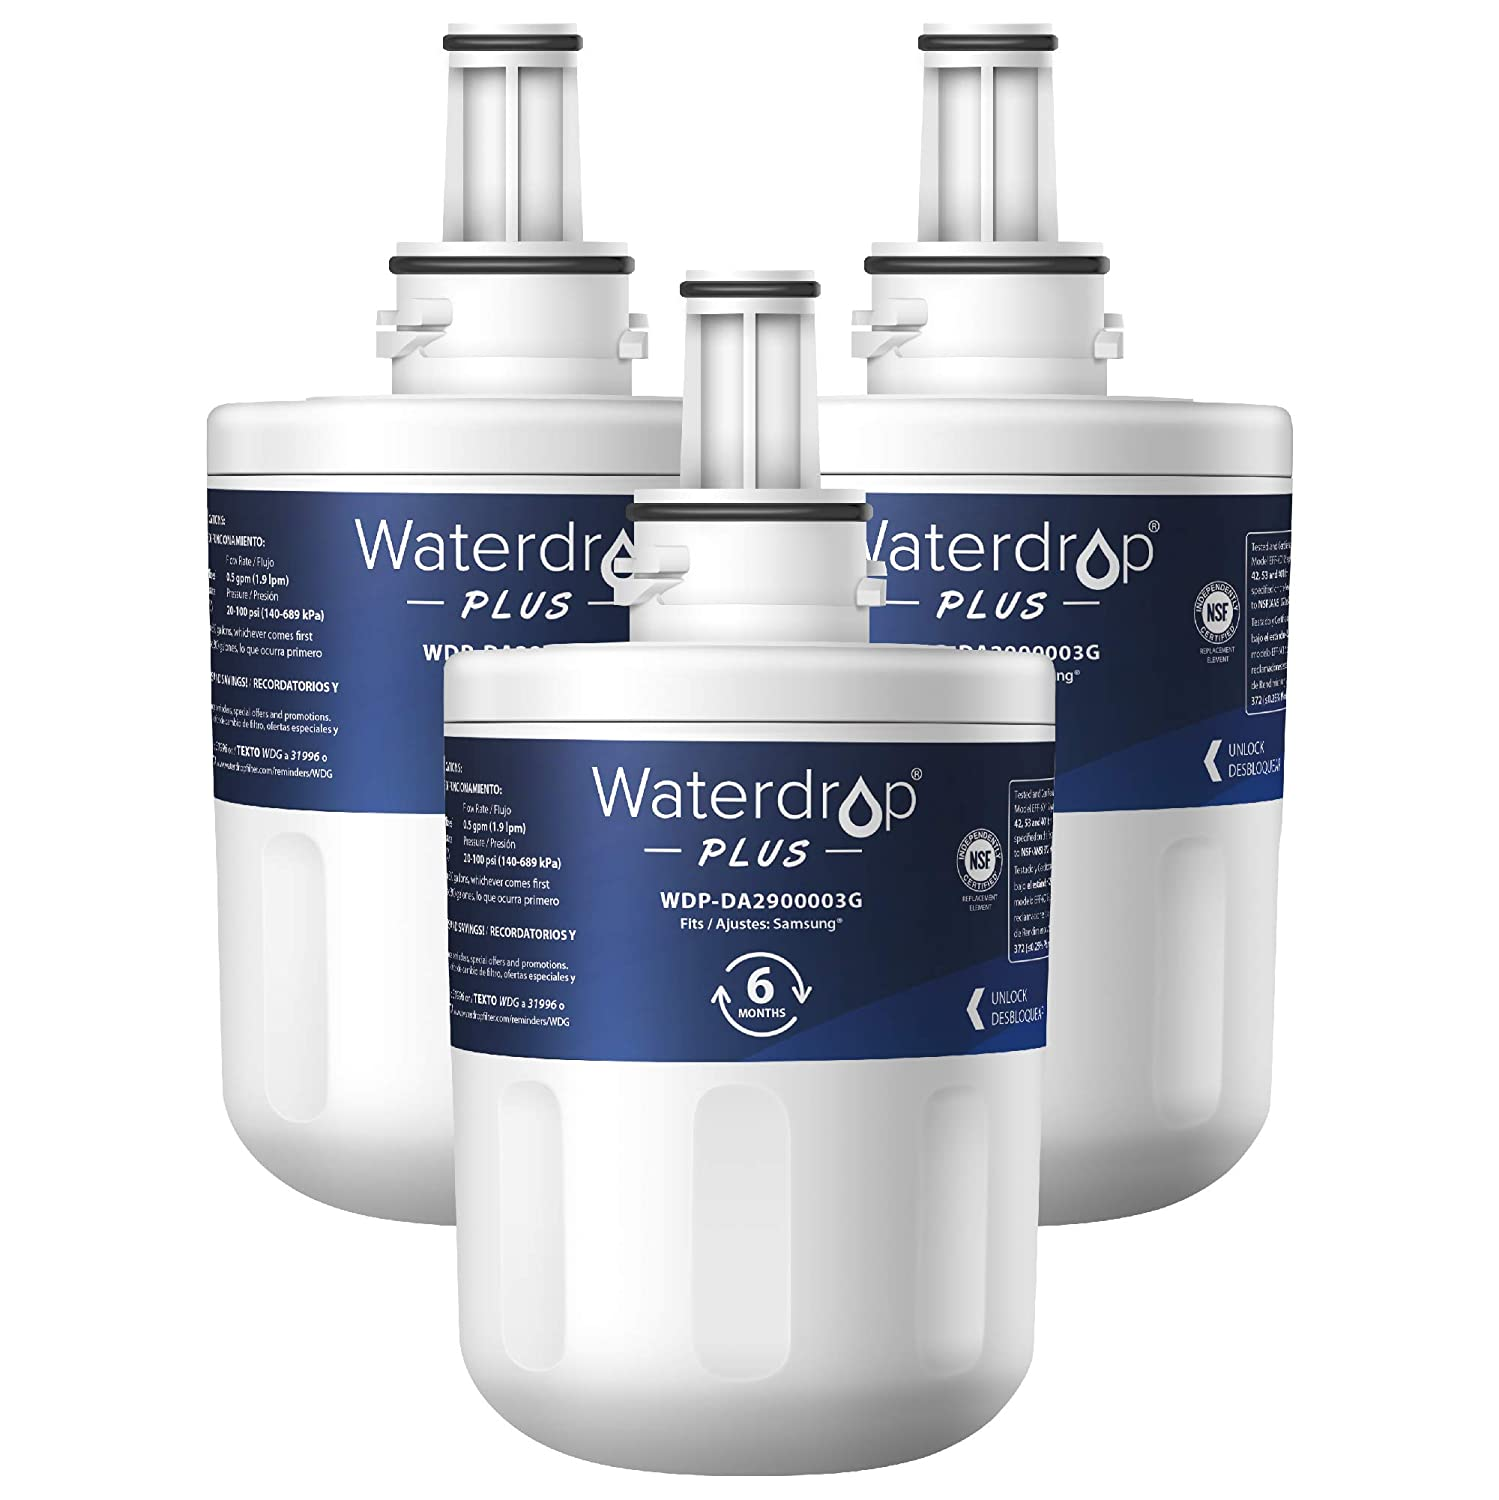 Waterdrop NSF 401&53&42 Certified DA29-00003G Replacement Refrigerator Water Filter, Compatible with Samsung DA29-00003G, Aqua-Pure Plus DA29-00003B, HAFCU1, DA29-00003A, Plus, Pack of 3